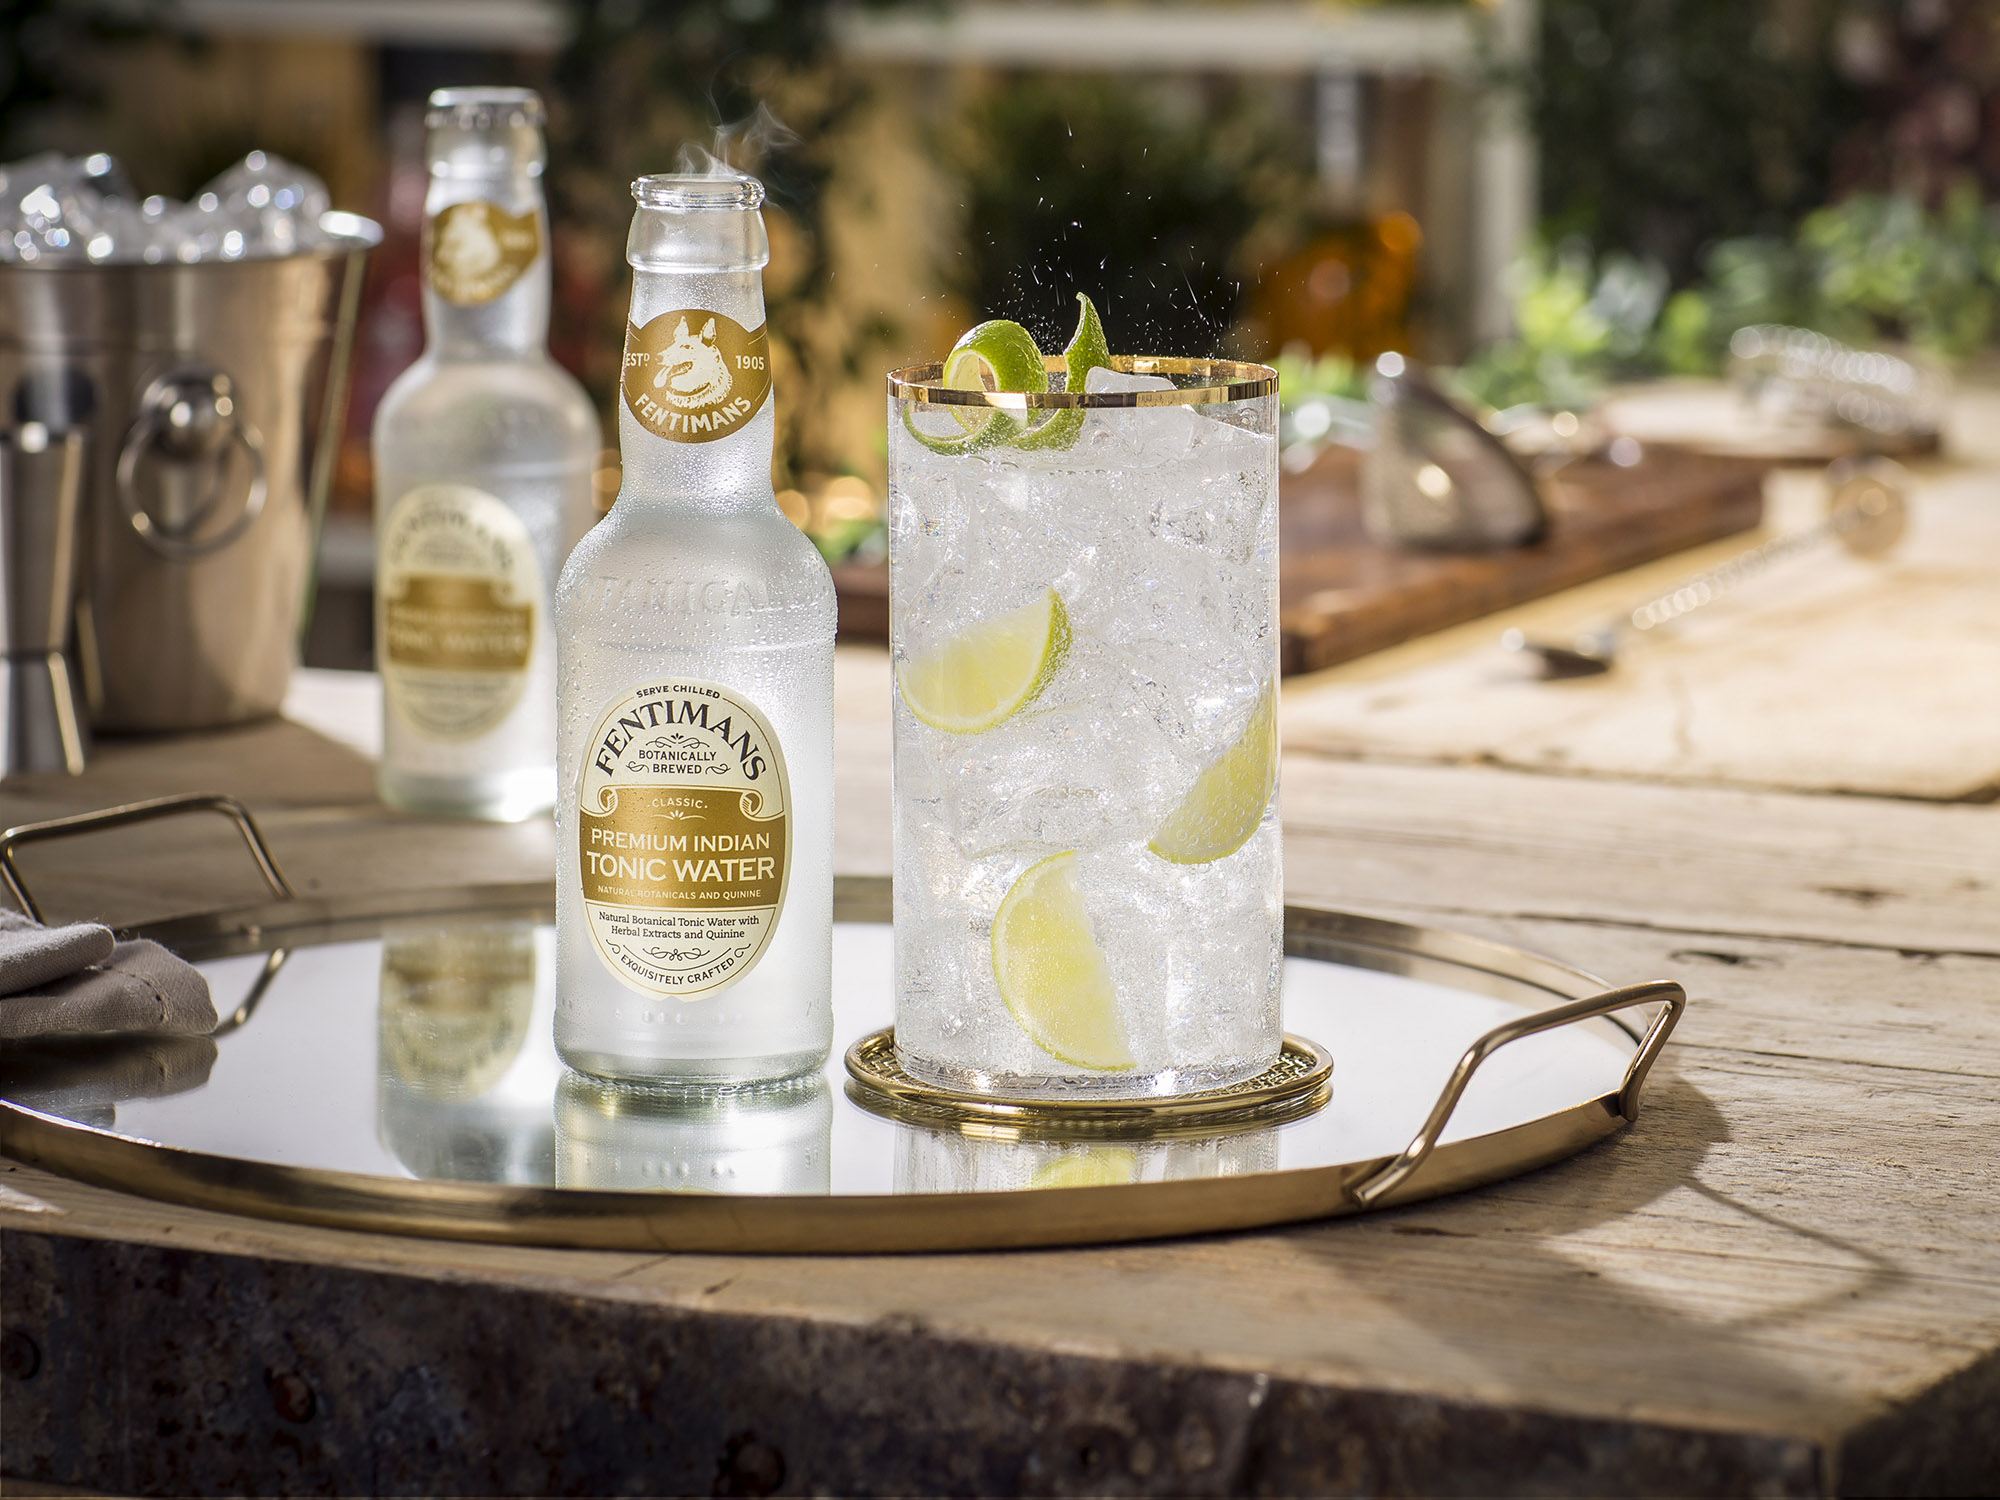 Premium Indian Tonic Water: New and Improved!